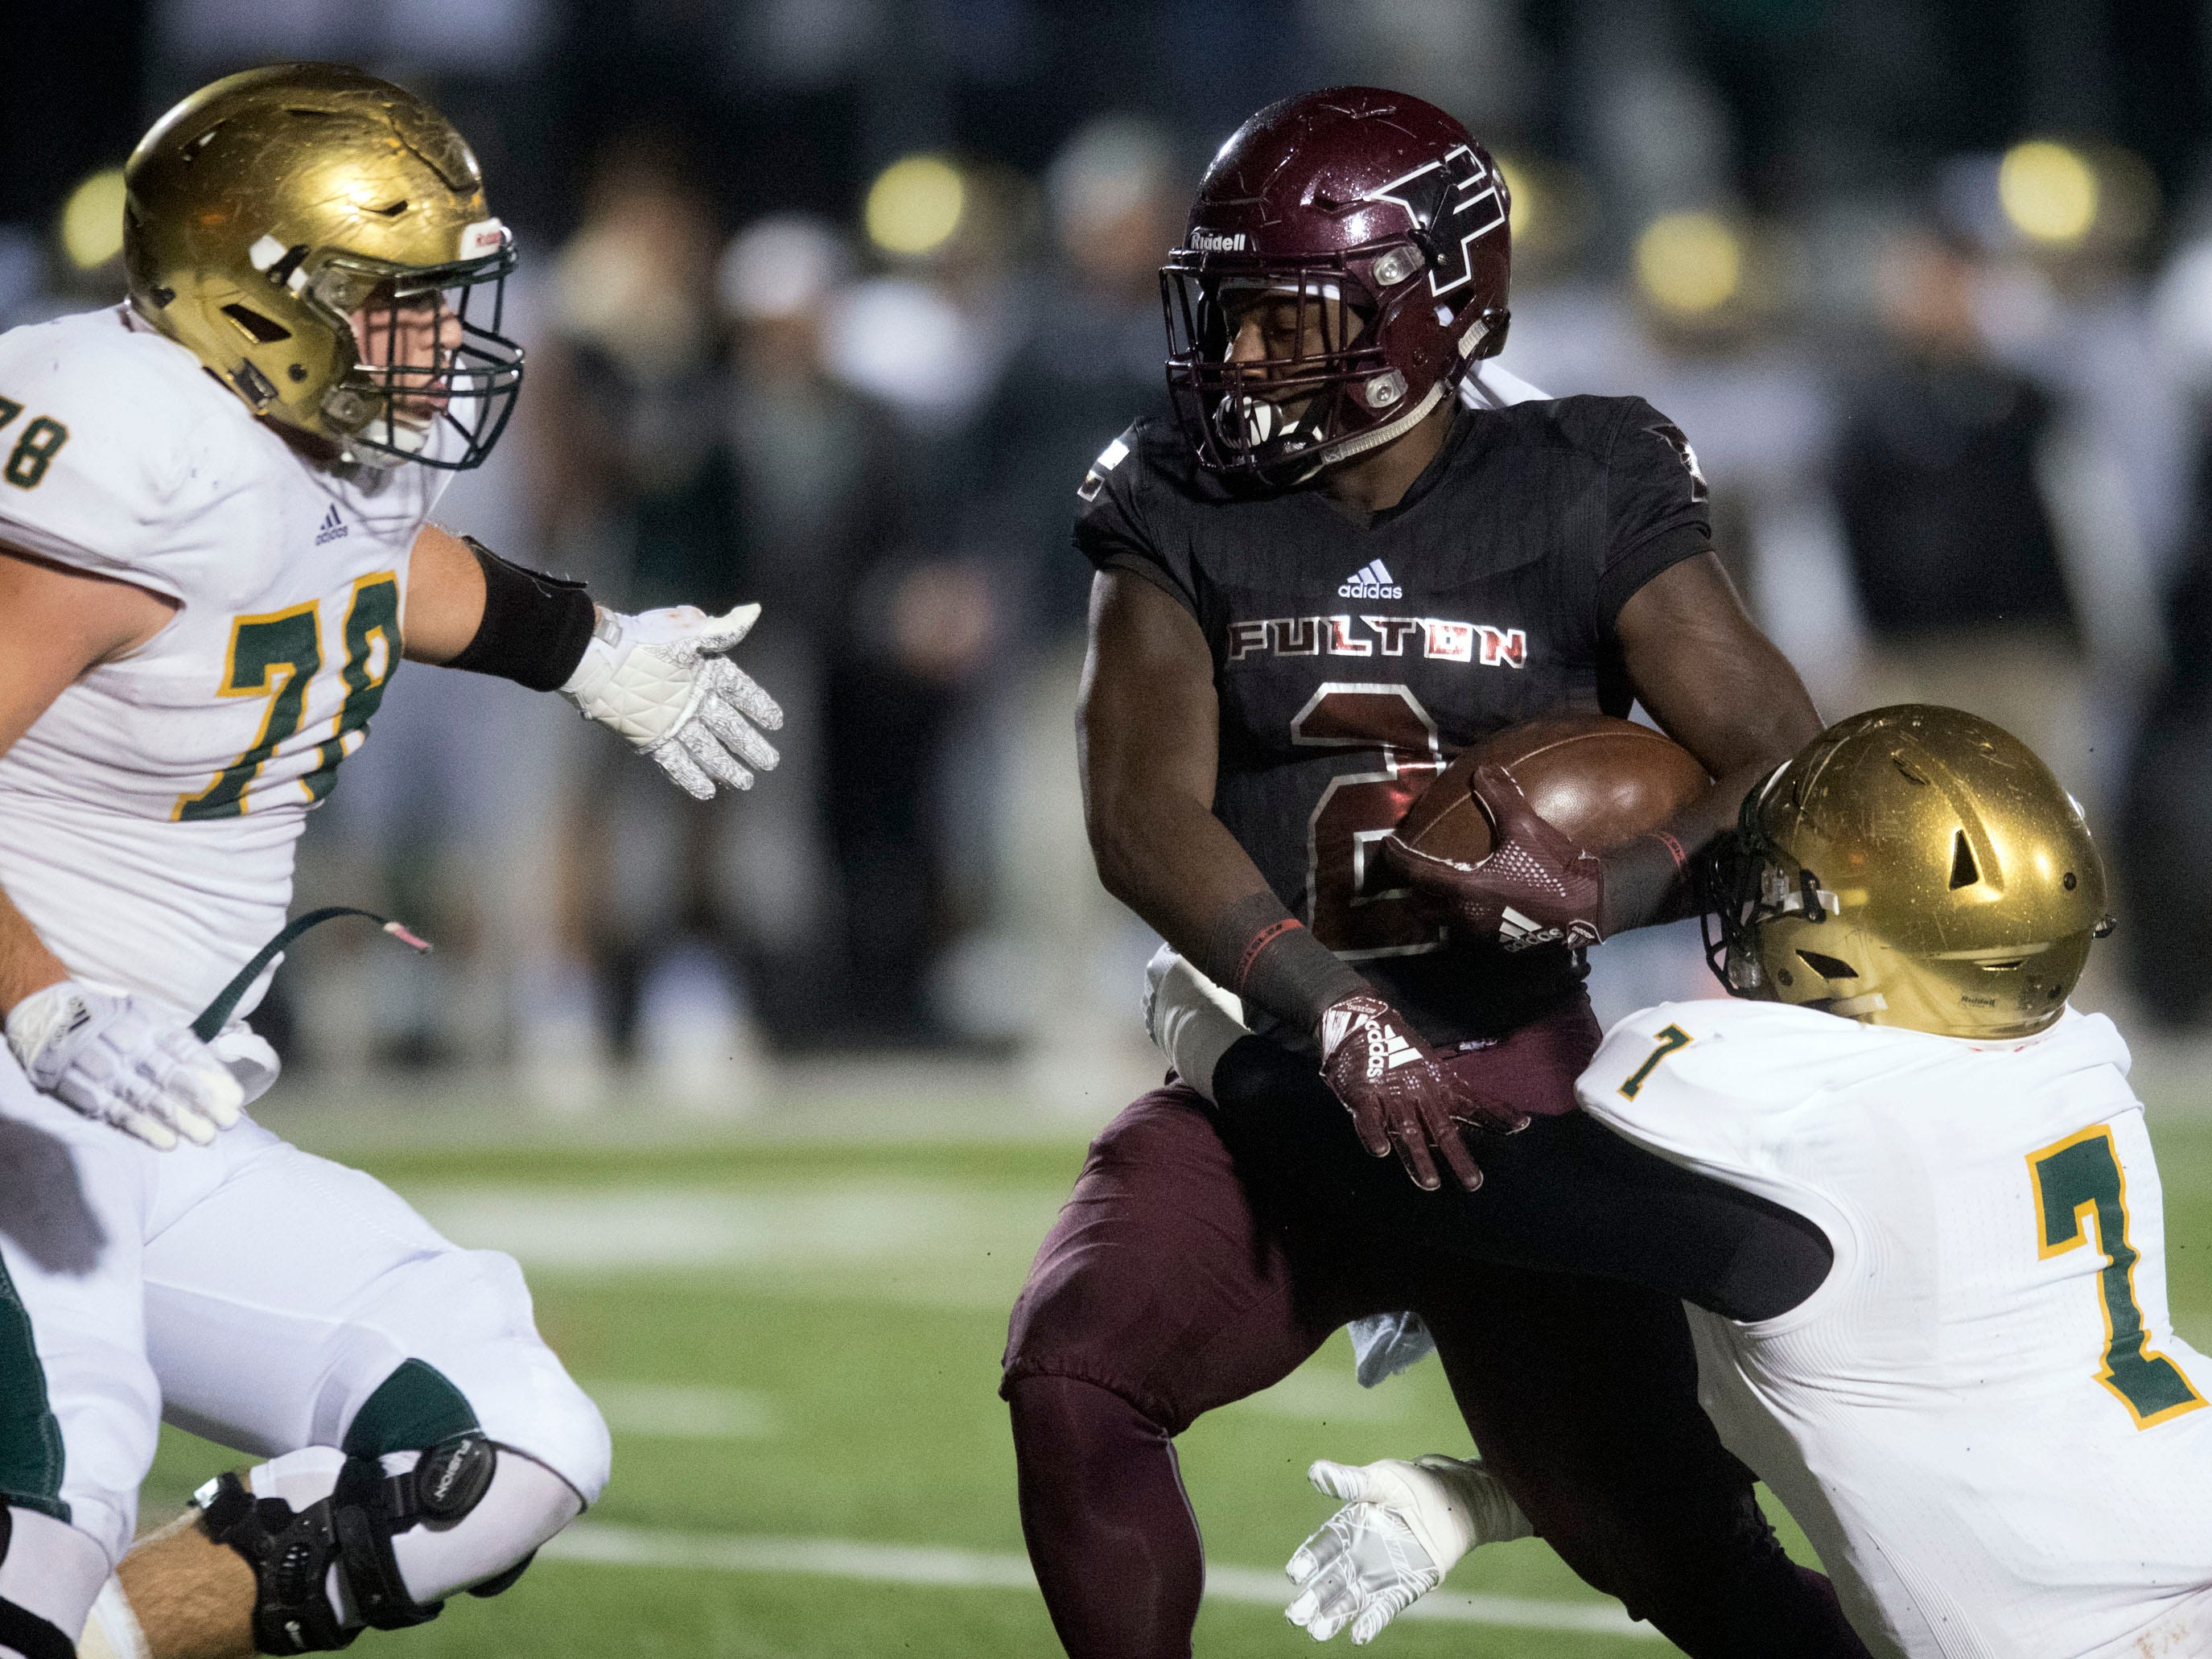 Fulton's JaShaun Fenderson (2) tries to fight off Knoxville Catholic's Stiles Moore (7) and Cooper Mays (78). Knoxville Catholic beat Fulton, 28-25 in the second round of the Class 5A playoffs on Friday, November 9, 2018.